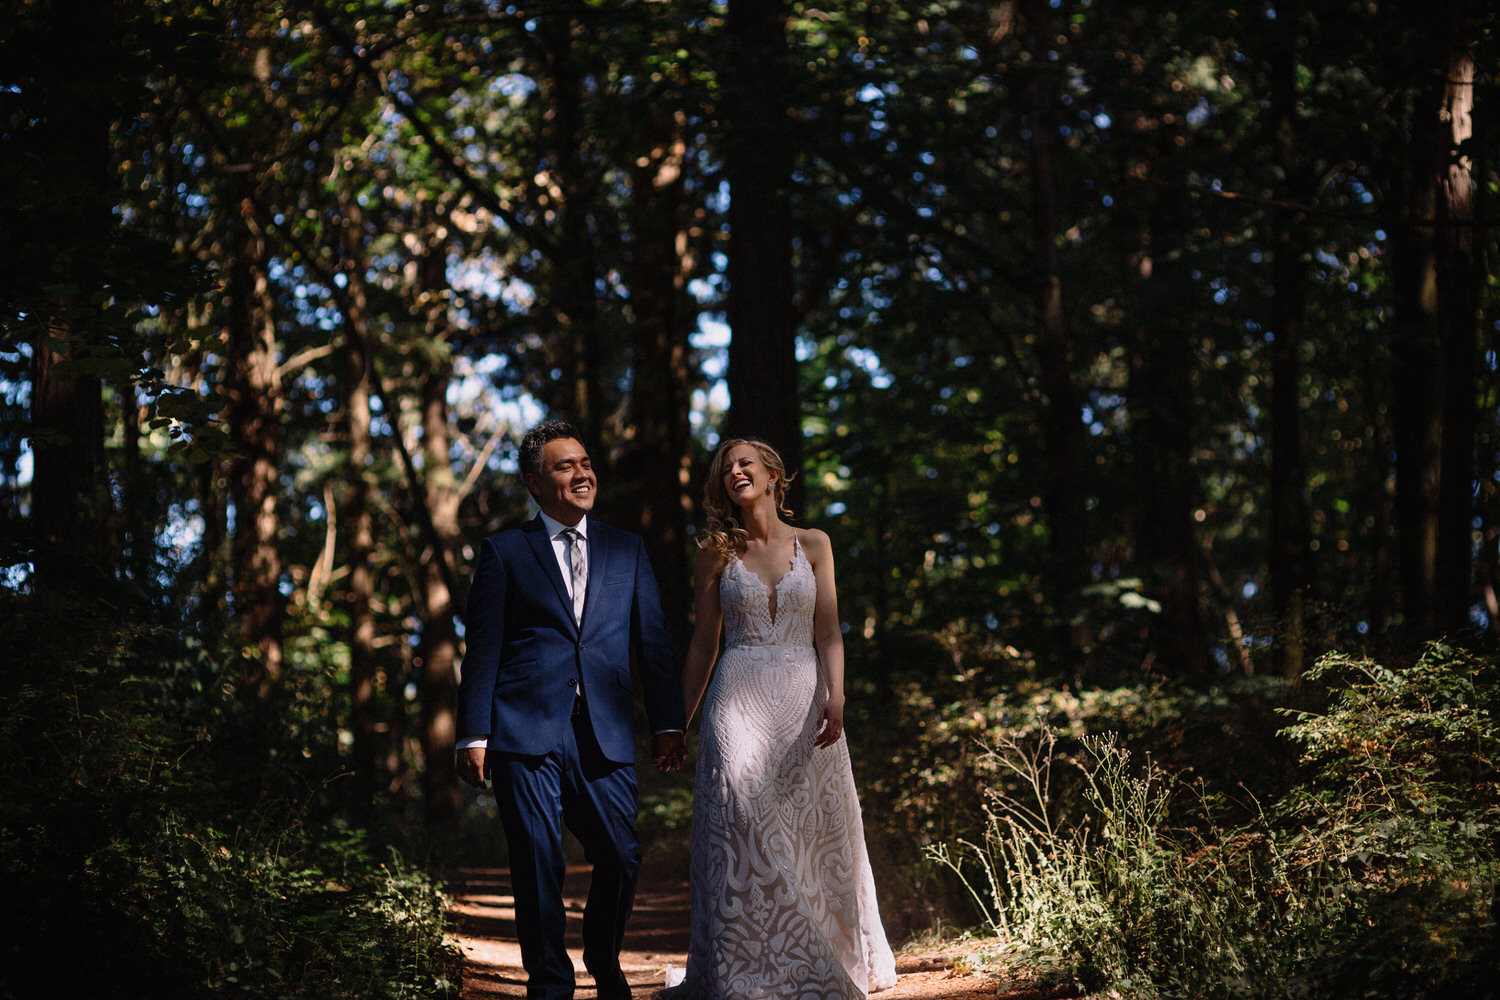 Mount Tabor Portland Oregon wedding photographer016.JPG